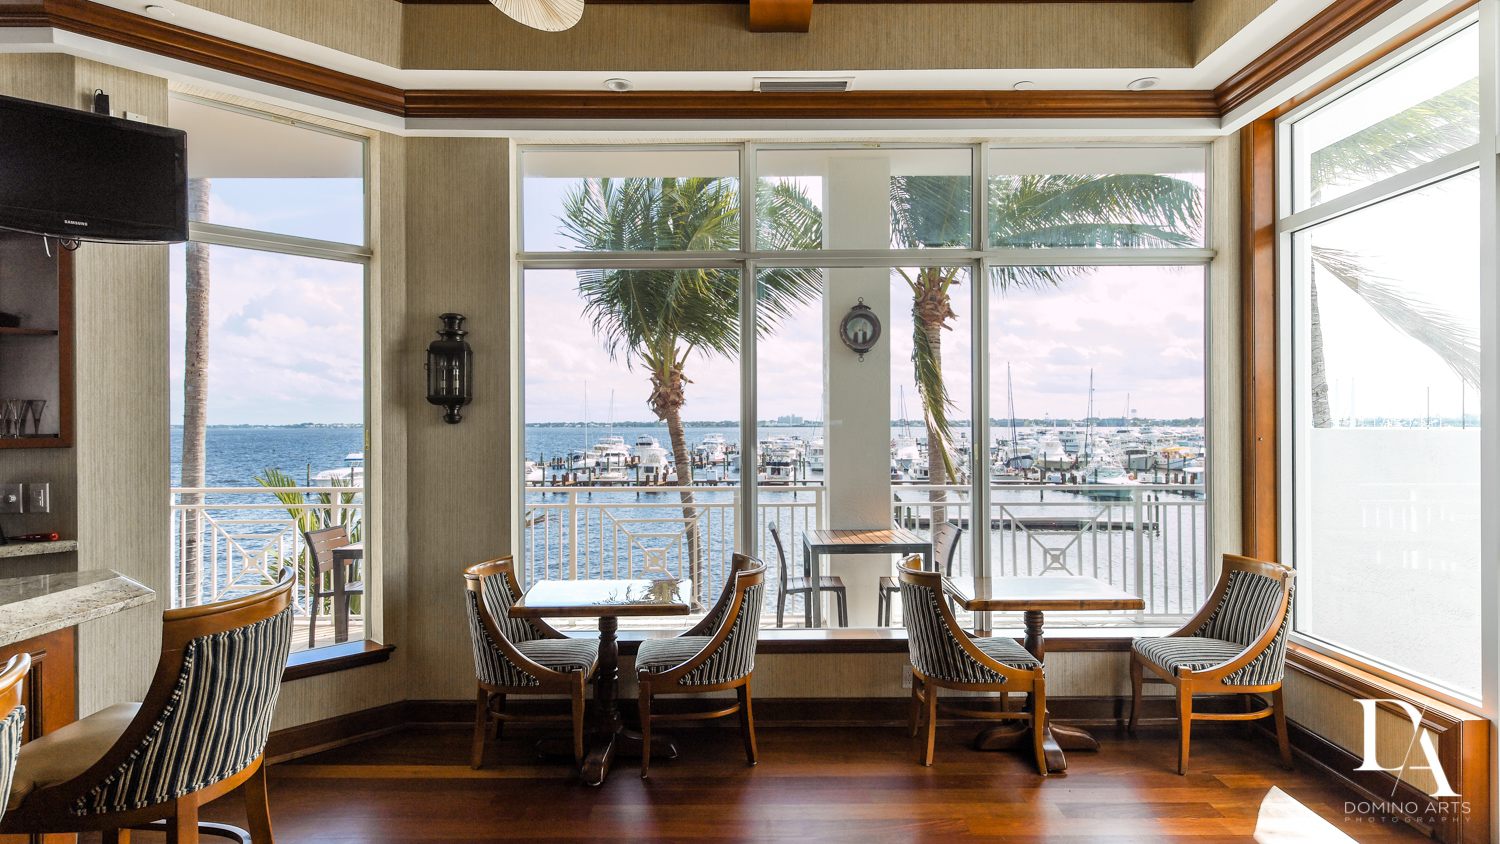 tranquility at Harborage Yacht Club & Marina by Domino Arts Photography